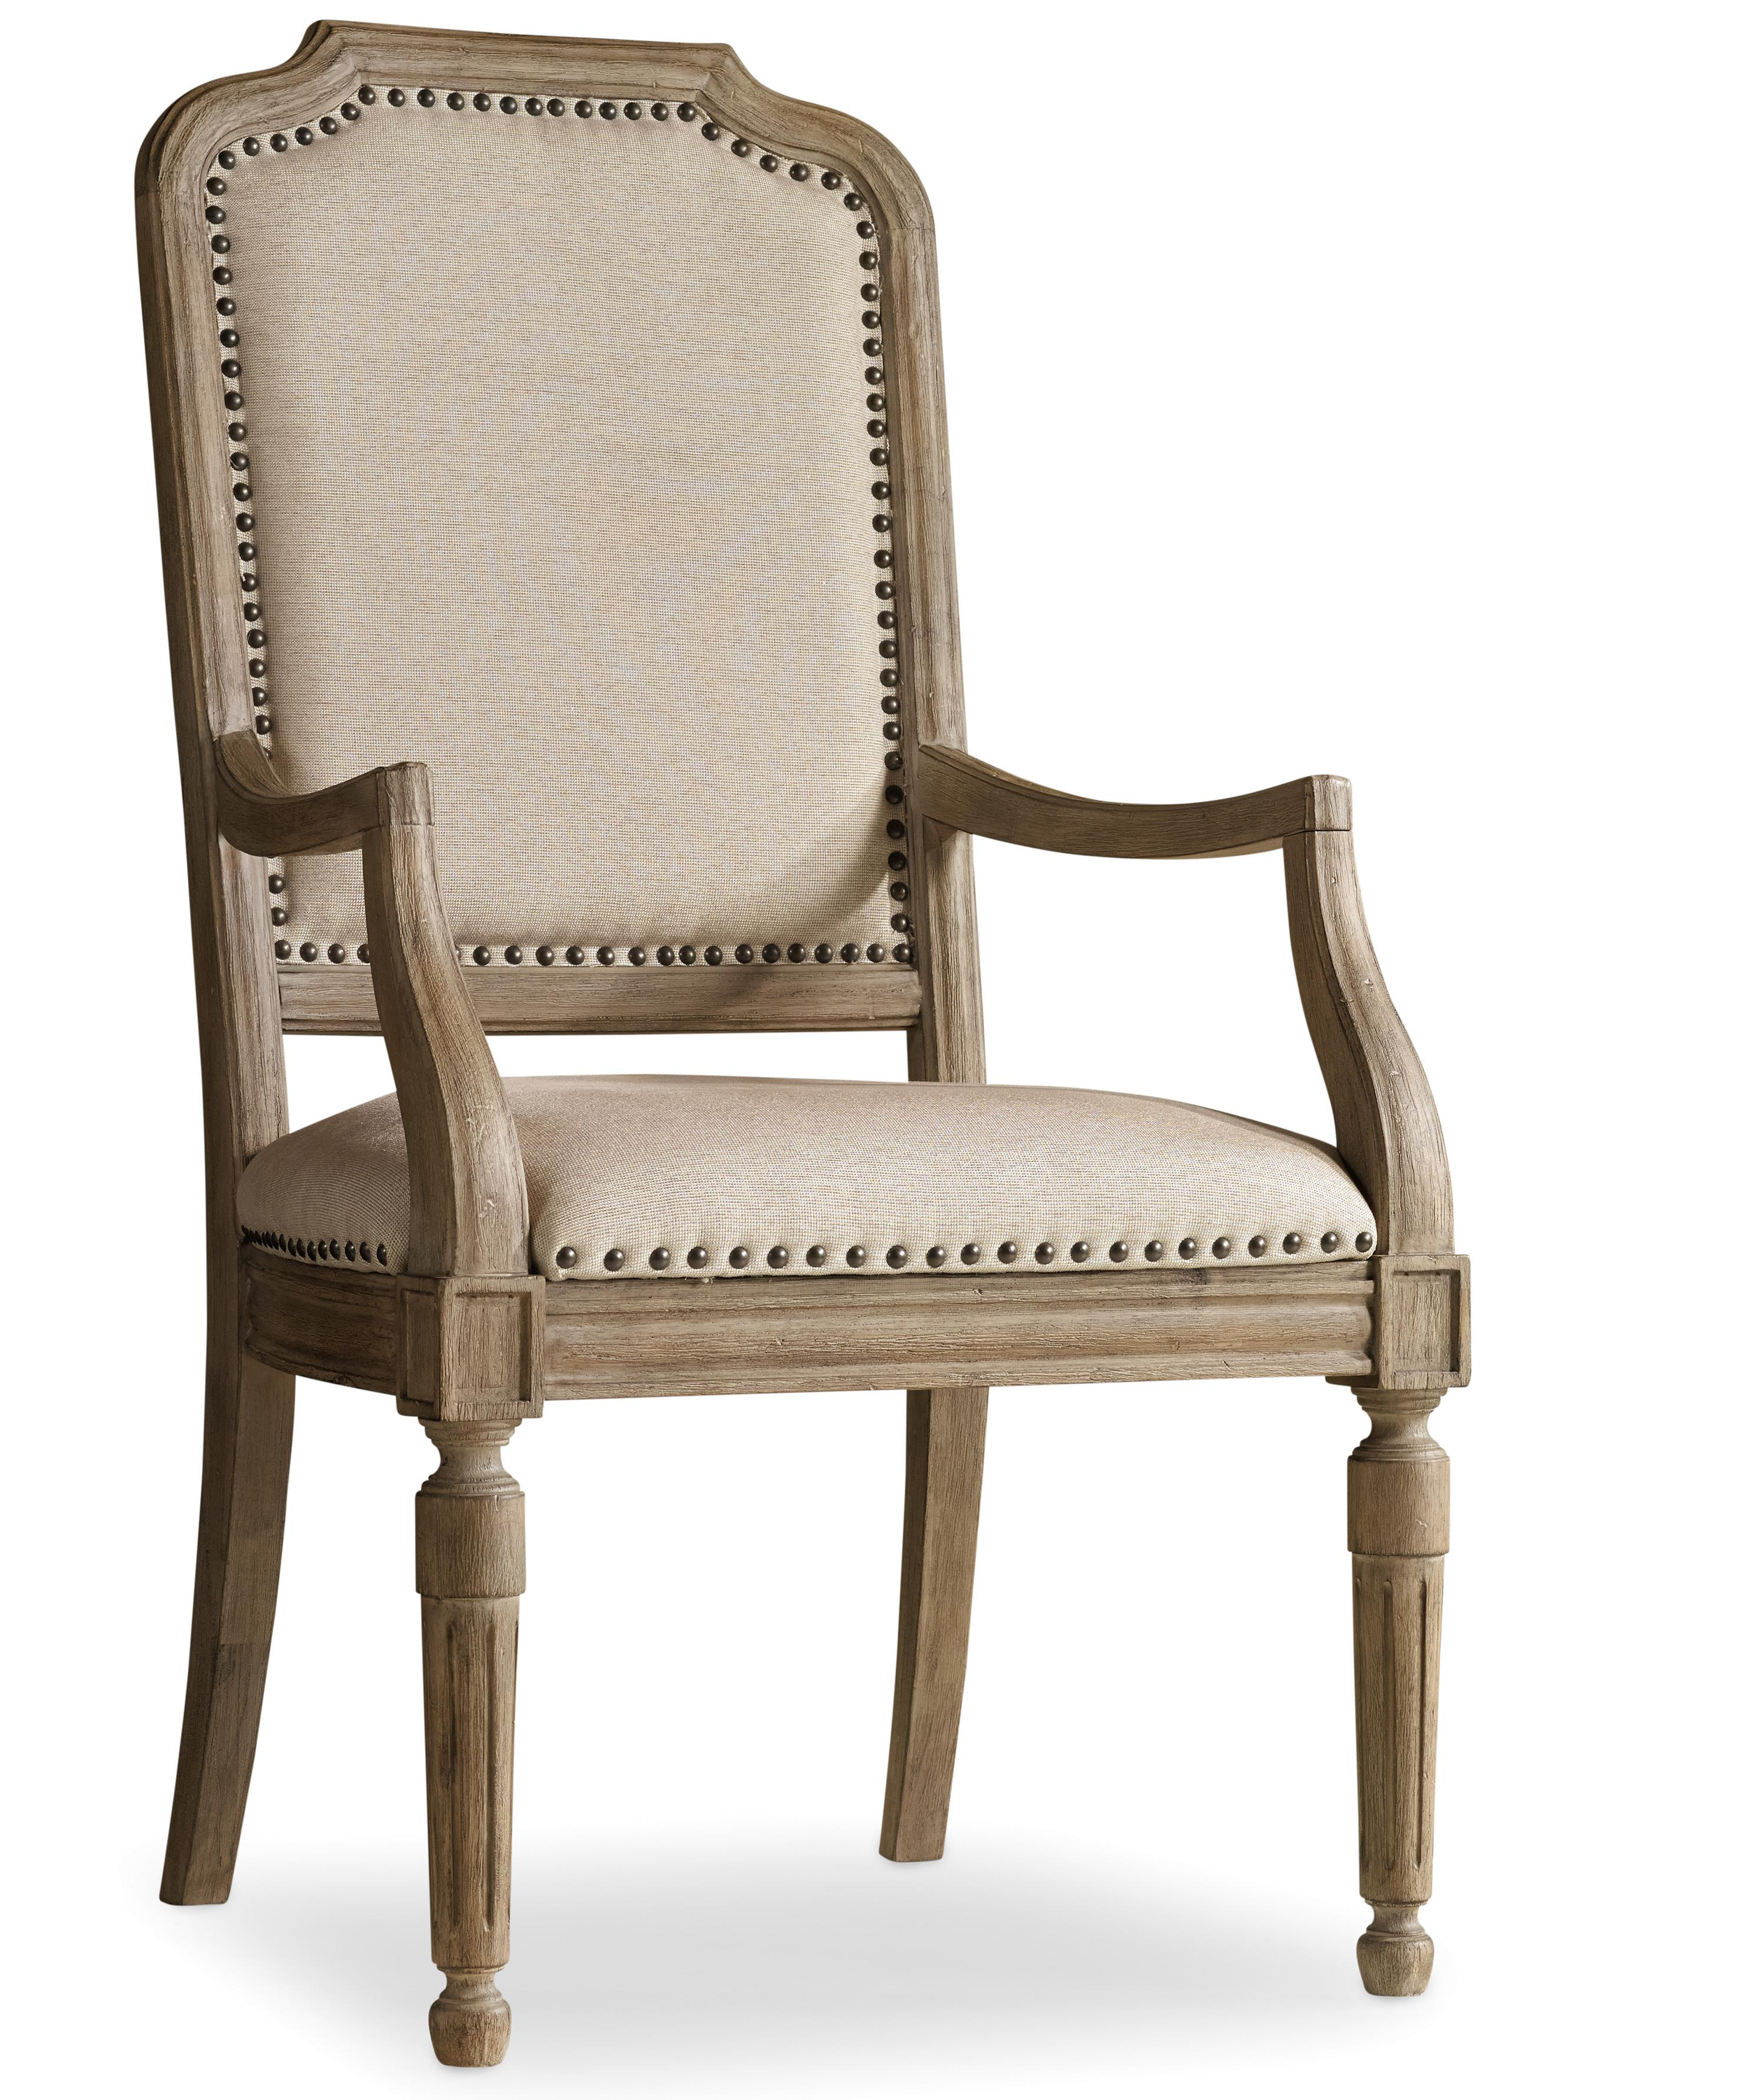 Corsica Upholstered Arm Chair by Hooker Furniture at Miller Waldrop Furniture and Decor